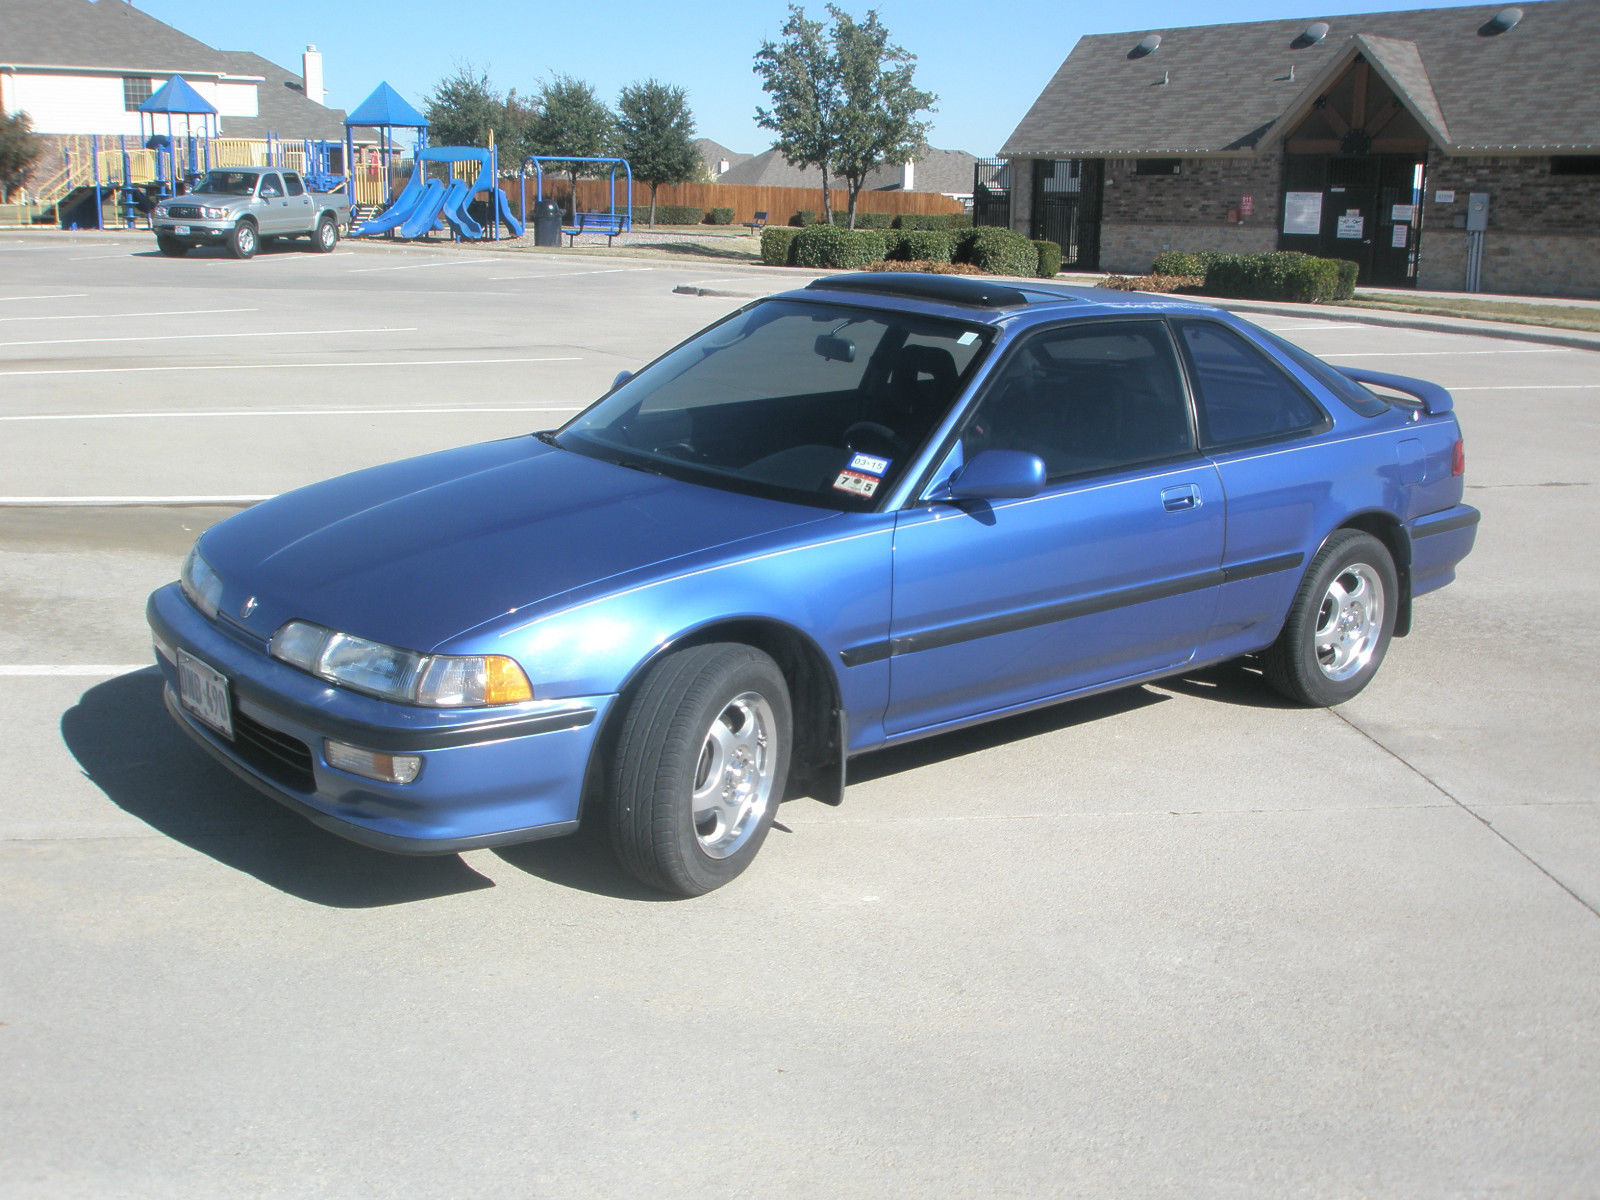 1992 Acura Integra Gs Hatchback 3 Door 18l Dark Blue Classic